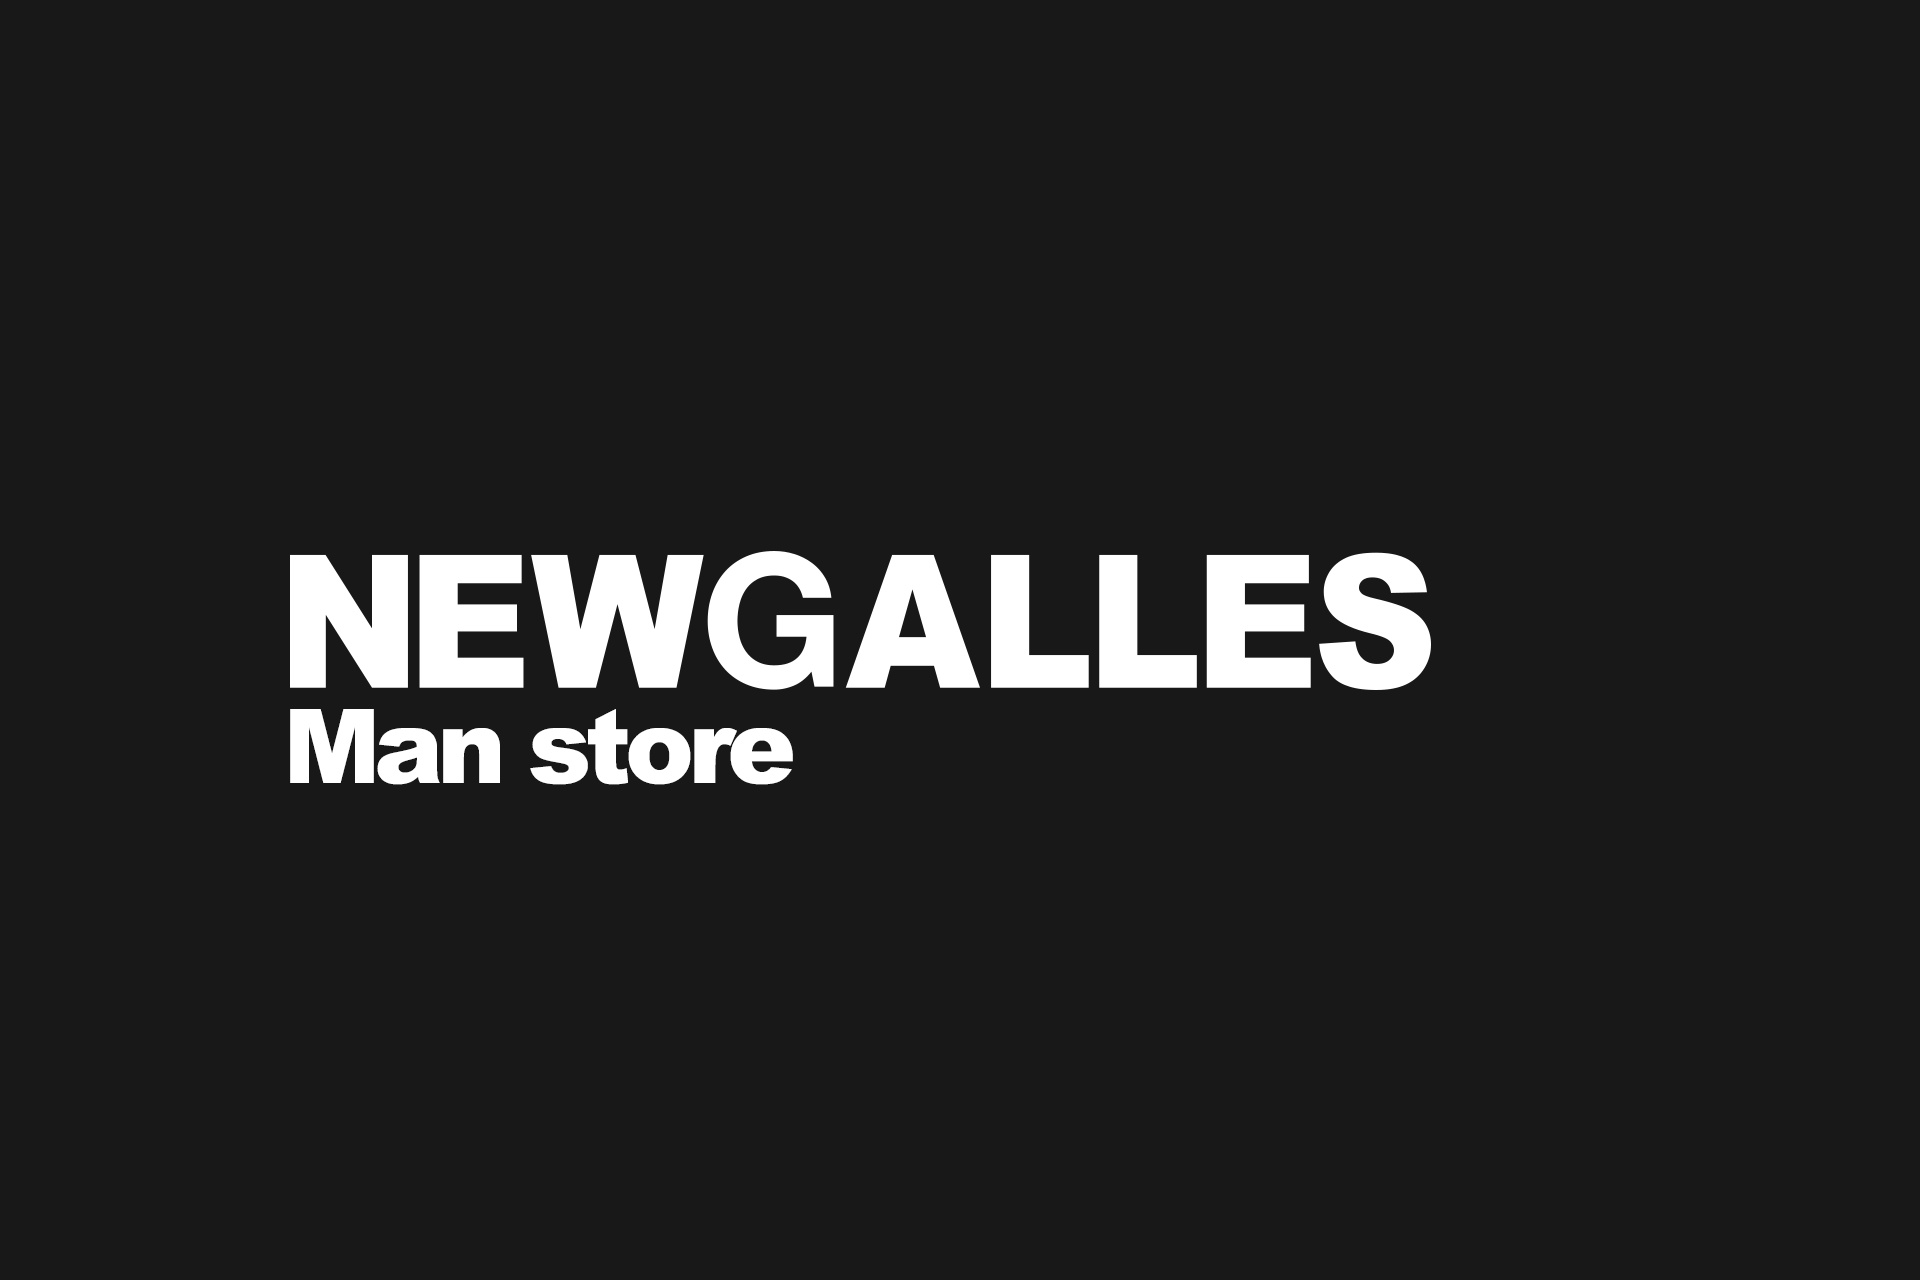 Man store - New Galles